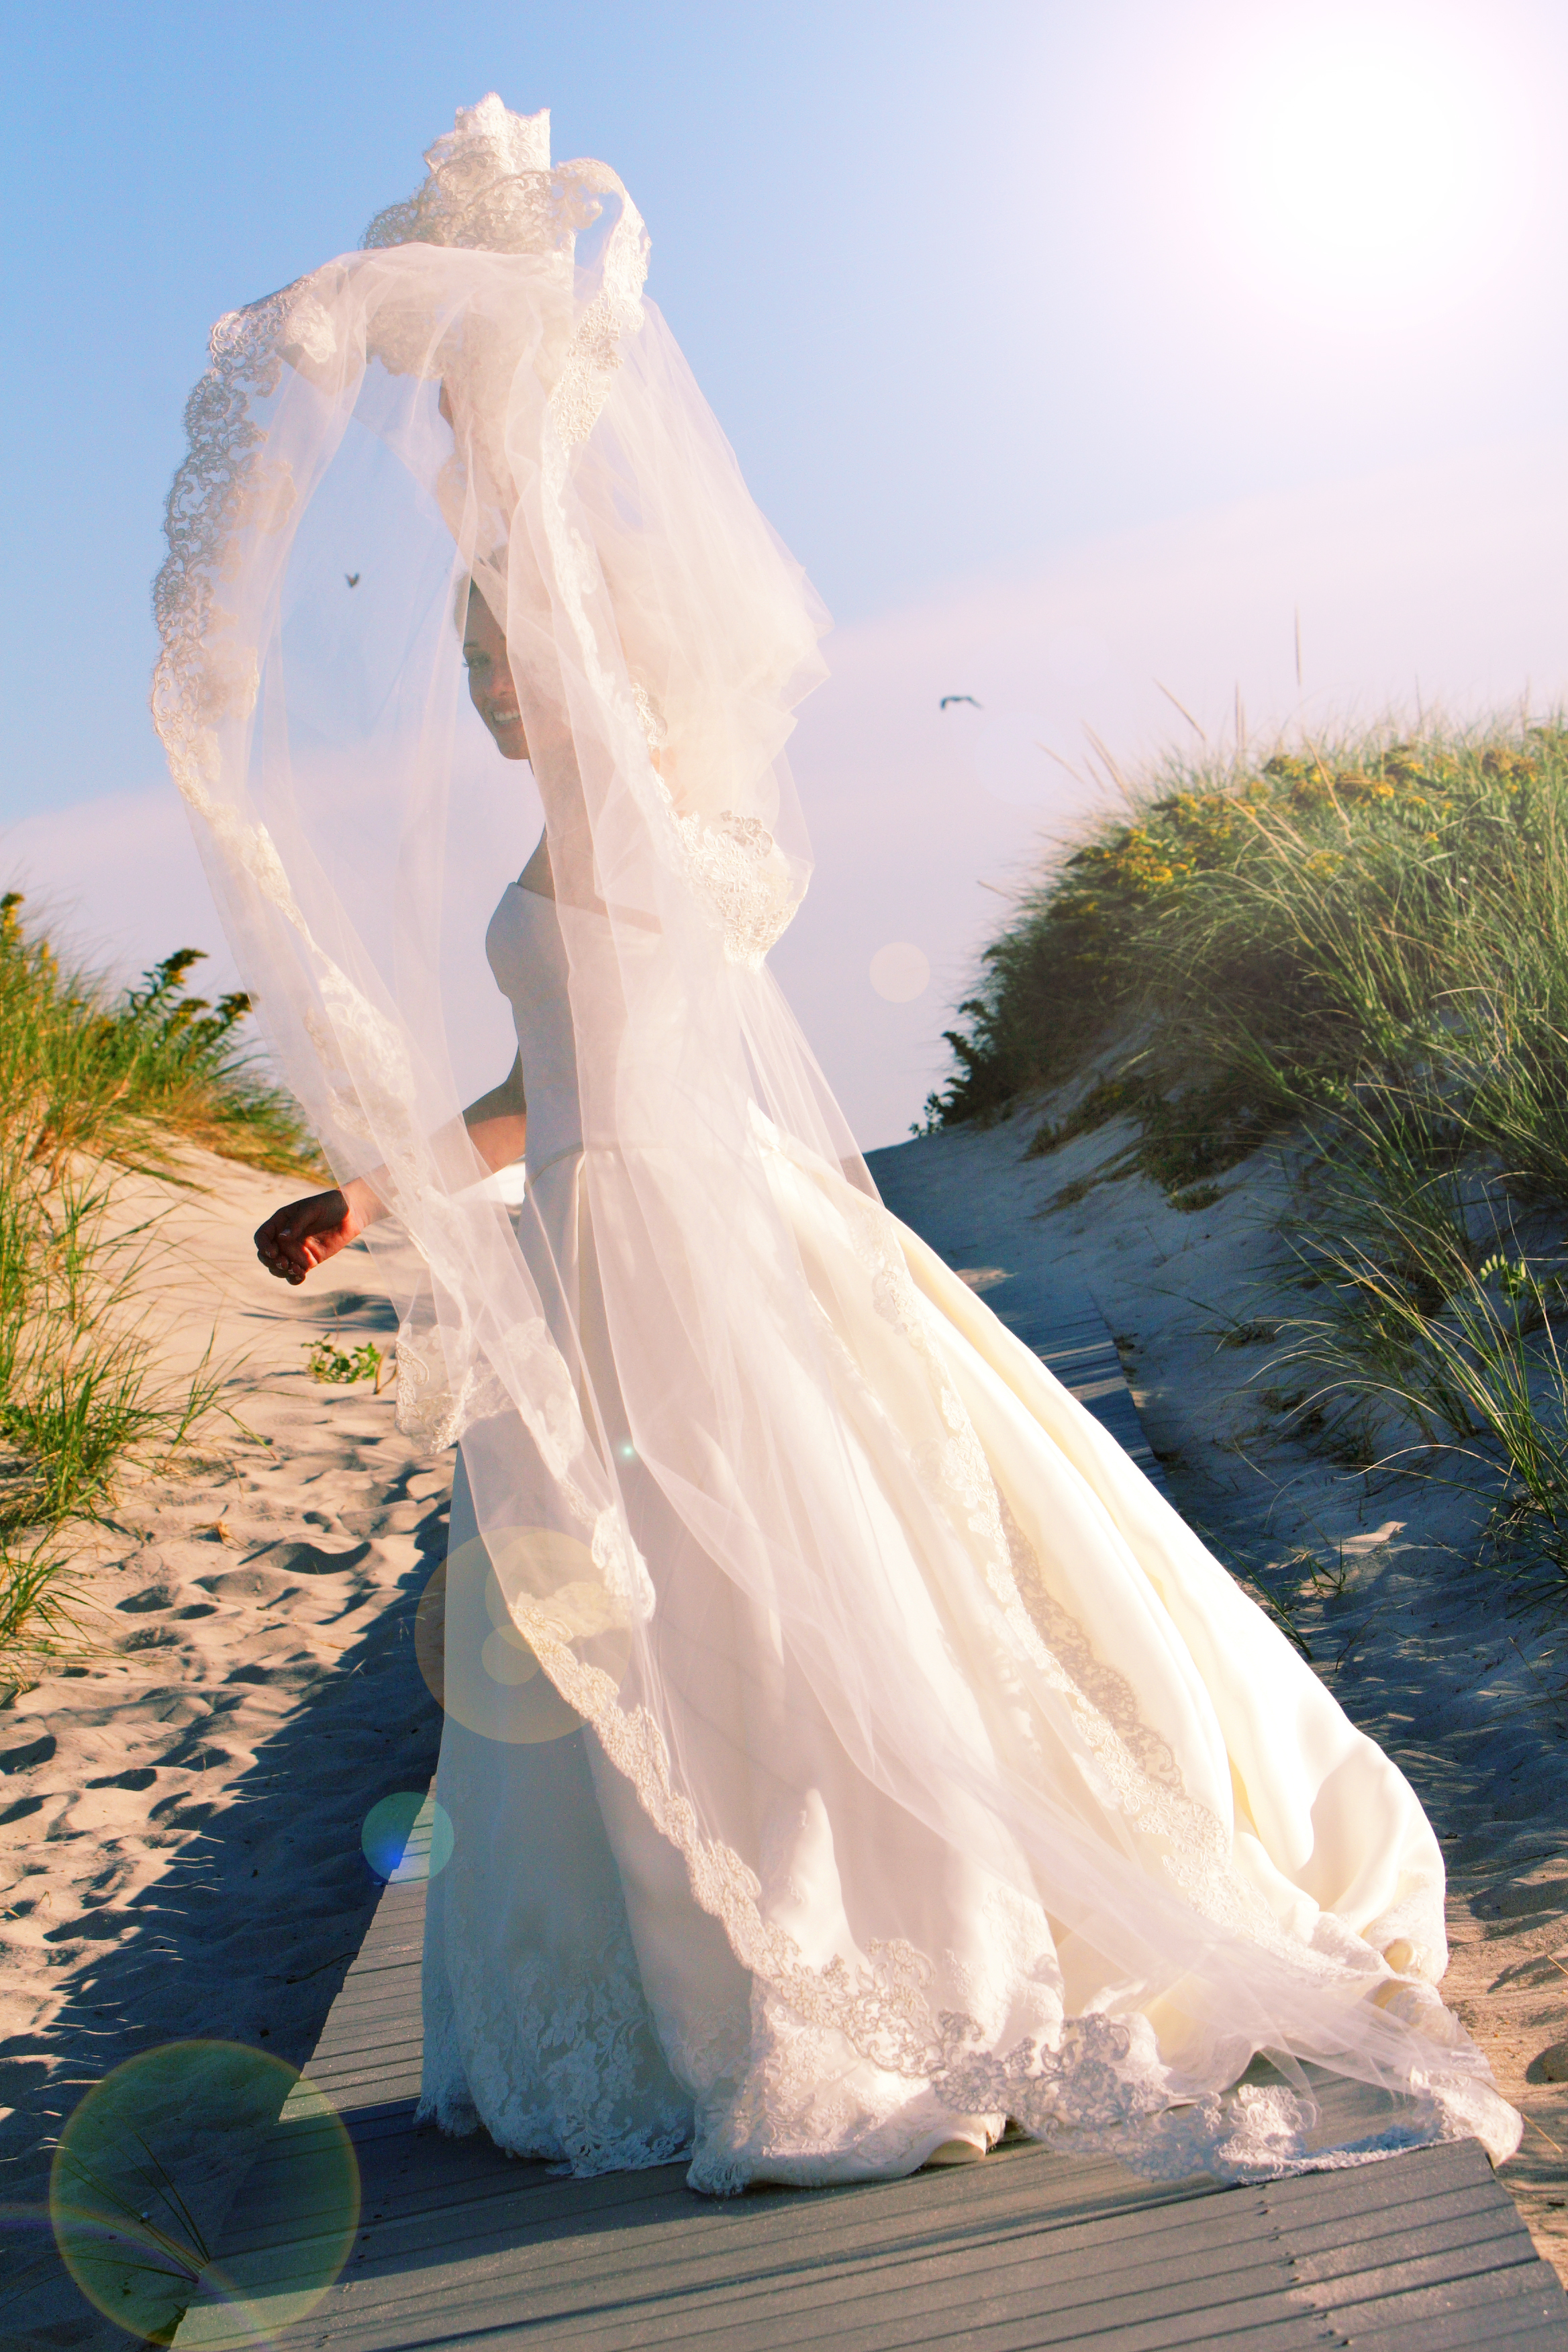 Ceremony, Flowers & Decor, Veils, Beach Wedding Dresses, Fashion, Beach, Bride, Beach Wedding Flowers & Decor, Veil, The, At, In, On, Her, Air, Throwing, Boardwalk, Atlantica, Westhampton, Following